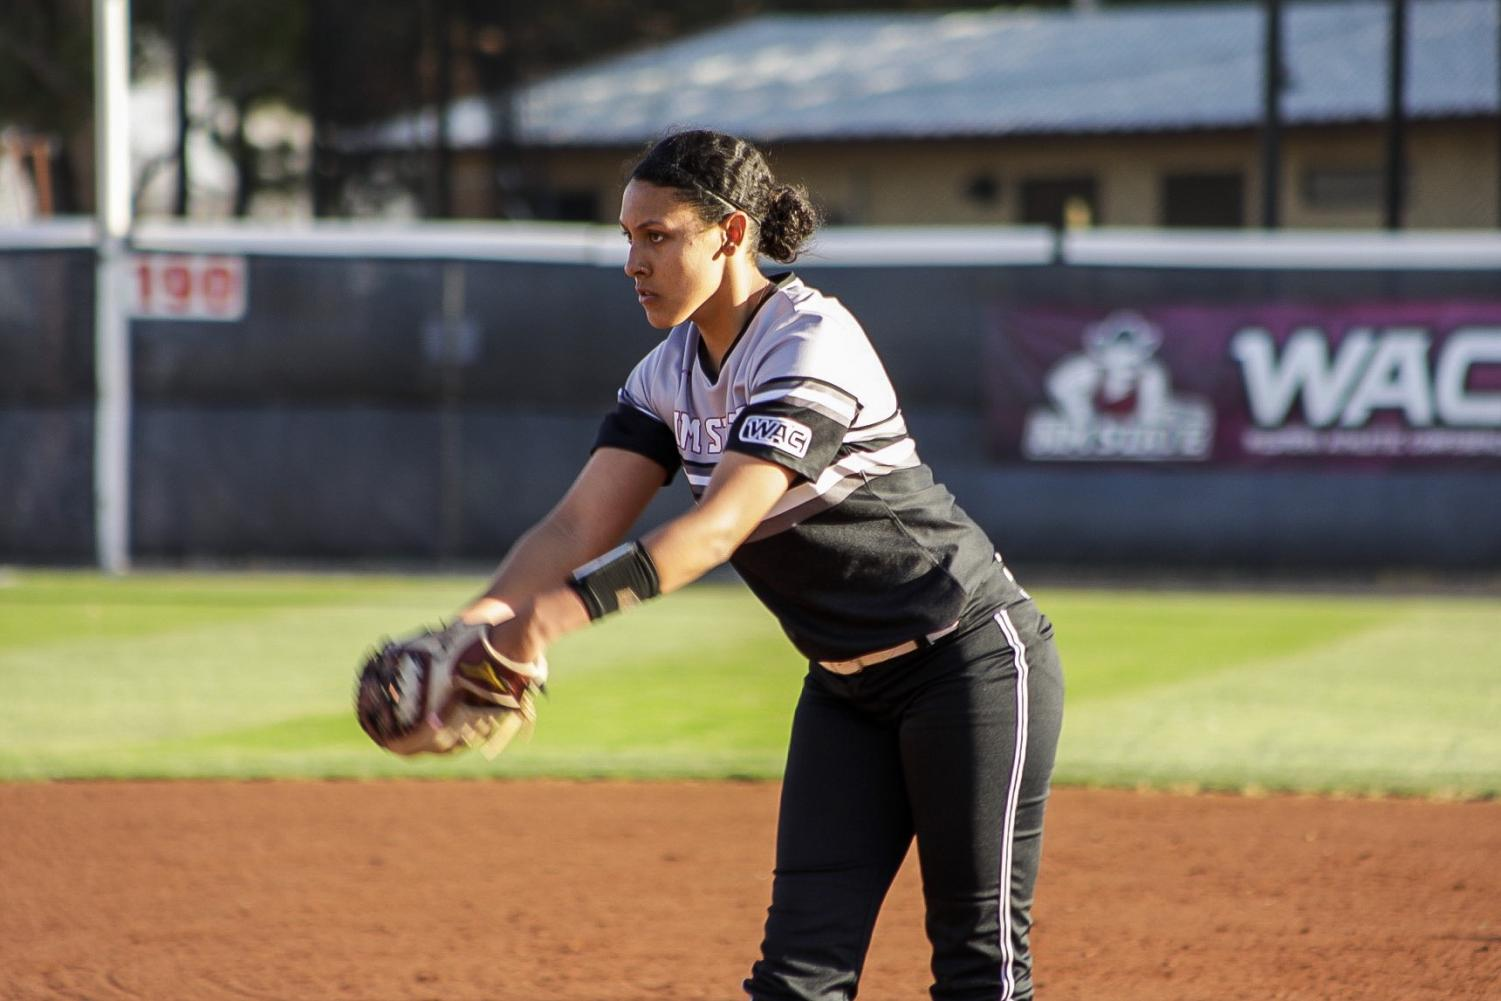 Samaria Diaz strikes out 13 and throws her second one-hit game in a row in the first tilt of NM State's doubleheader vs. the Lobos.